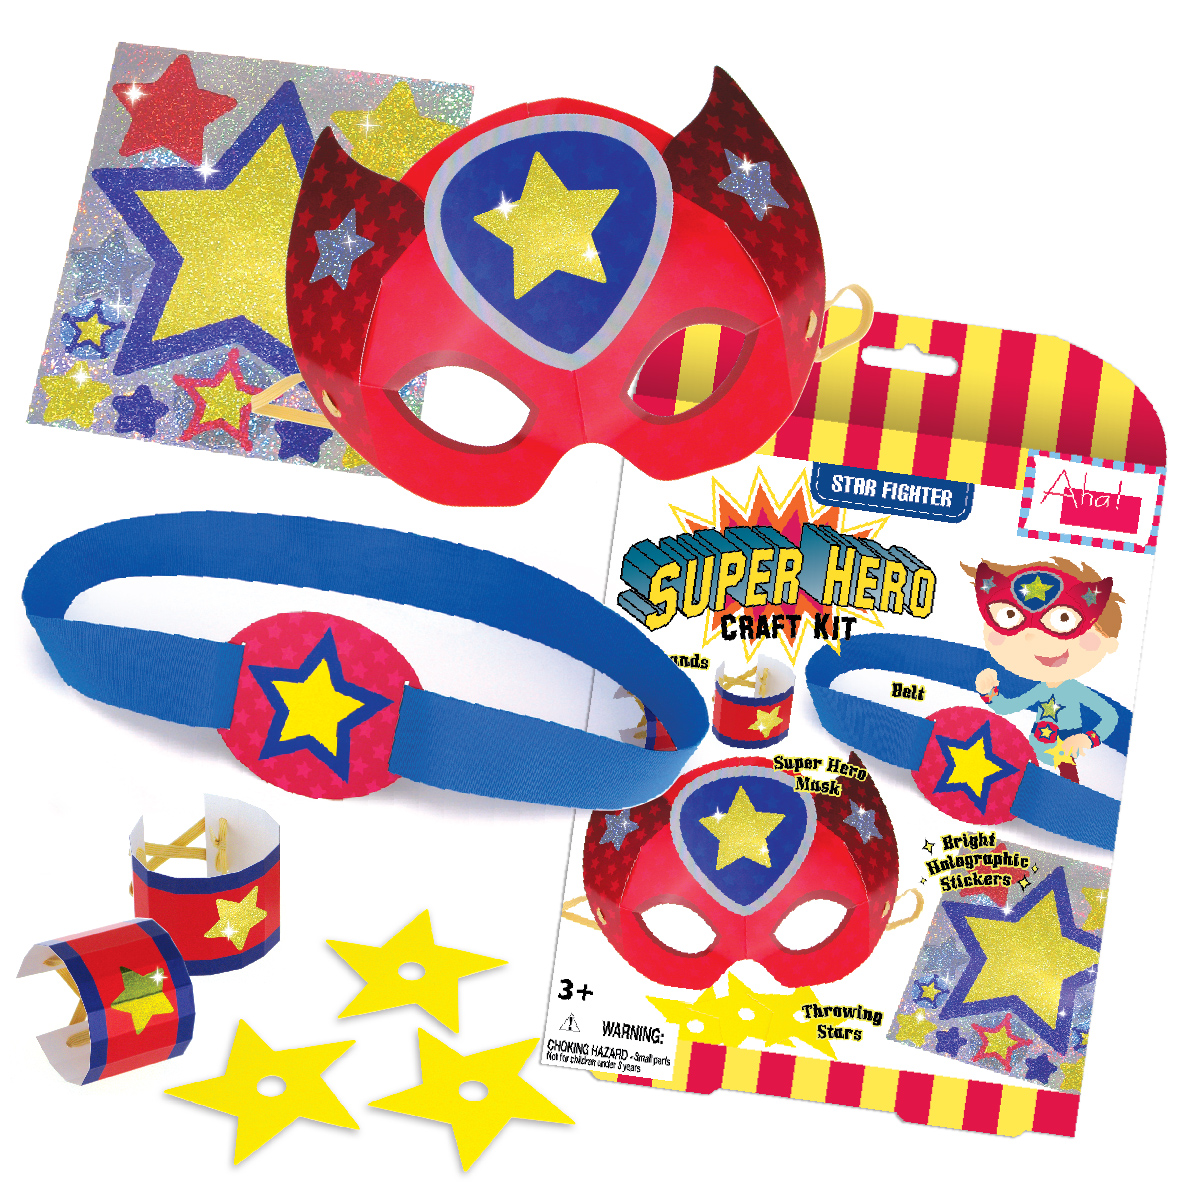 Super Hero Craft Kit